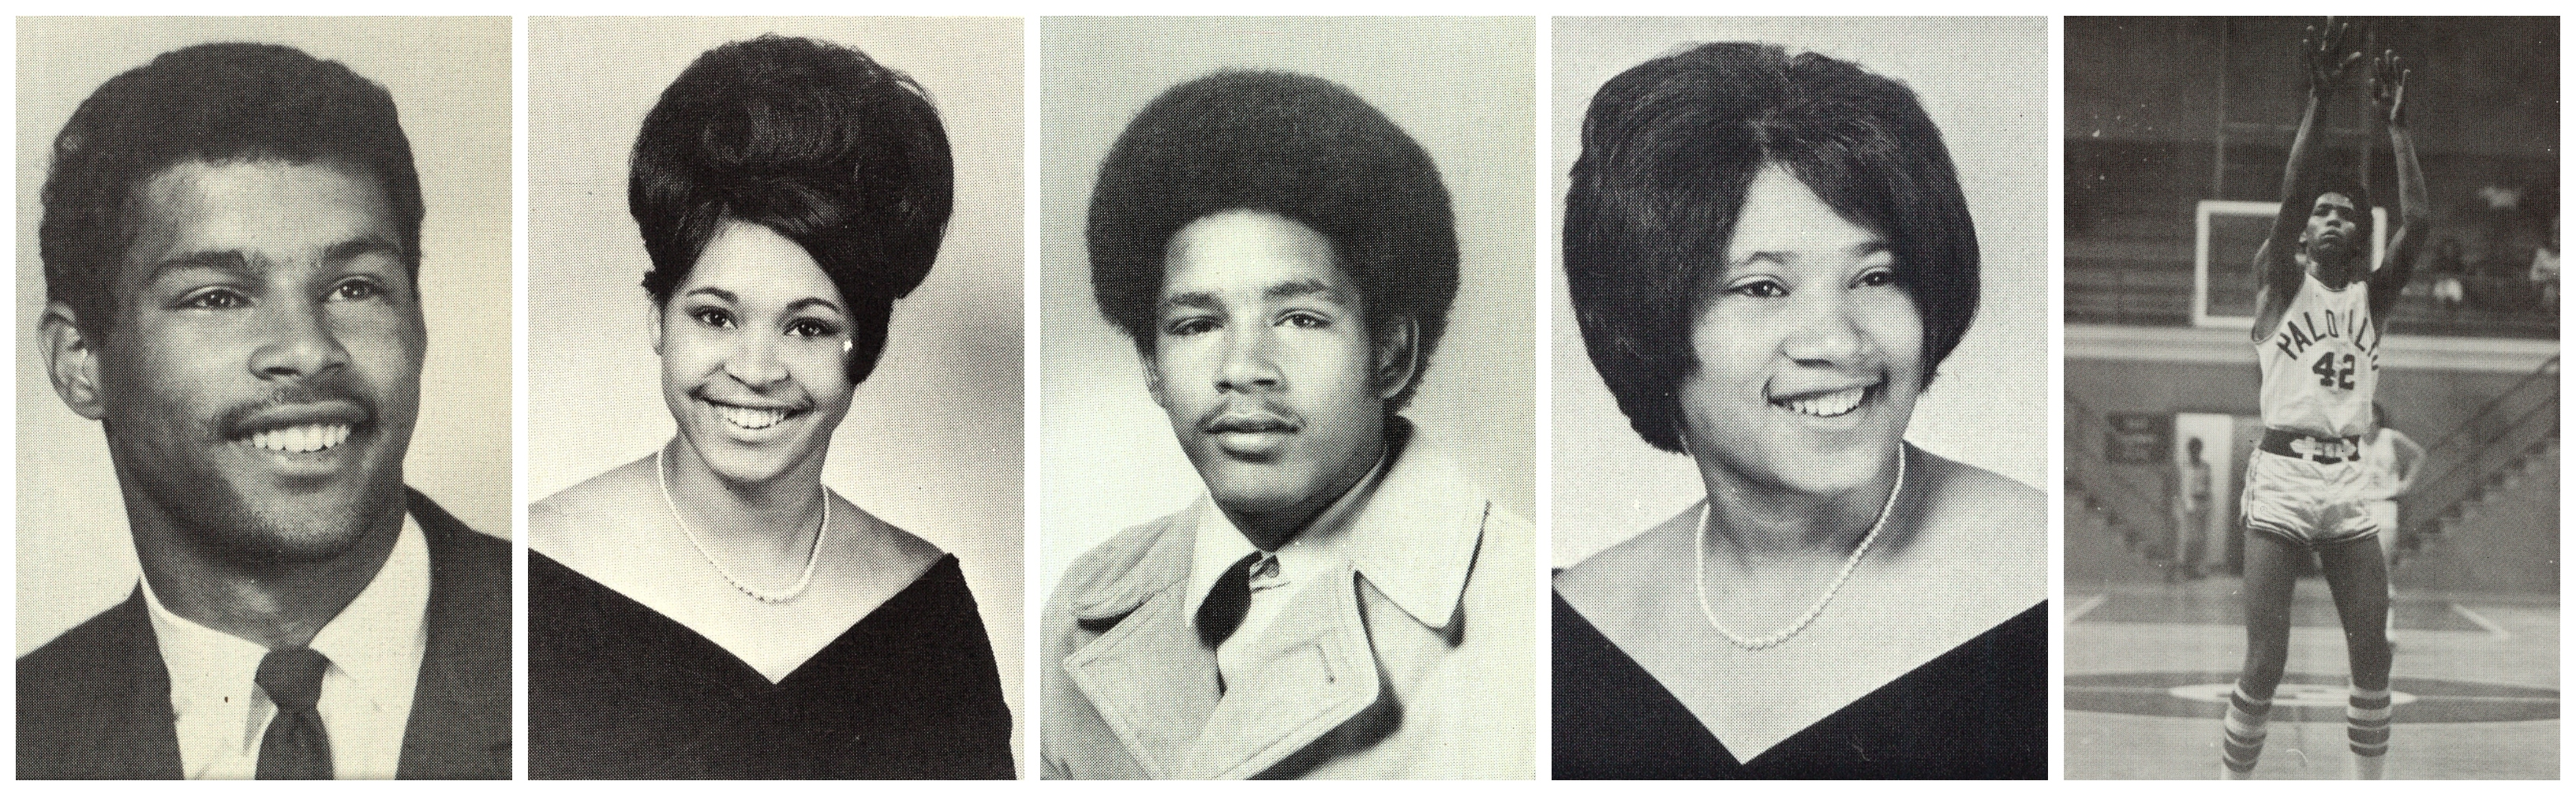 From left, siblings John Brown, Nadine Brown, David Brown, Angel Brown and Jimmy Brown, a star basketball player at Palo Alto High School. Images courtesy the Brown family.